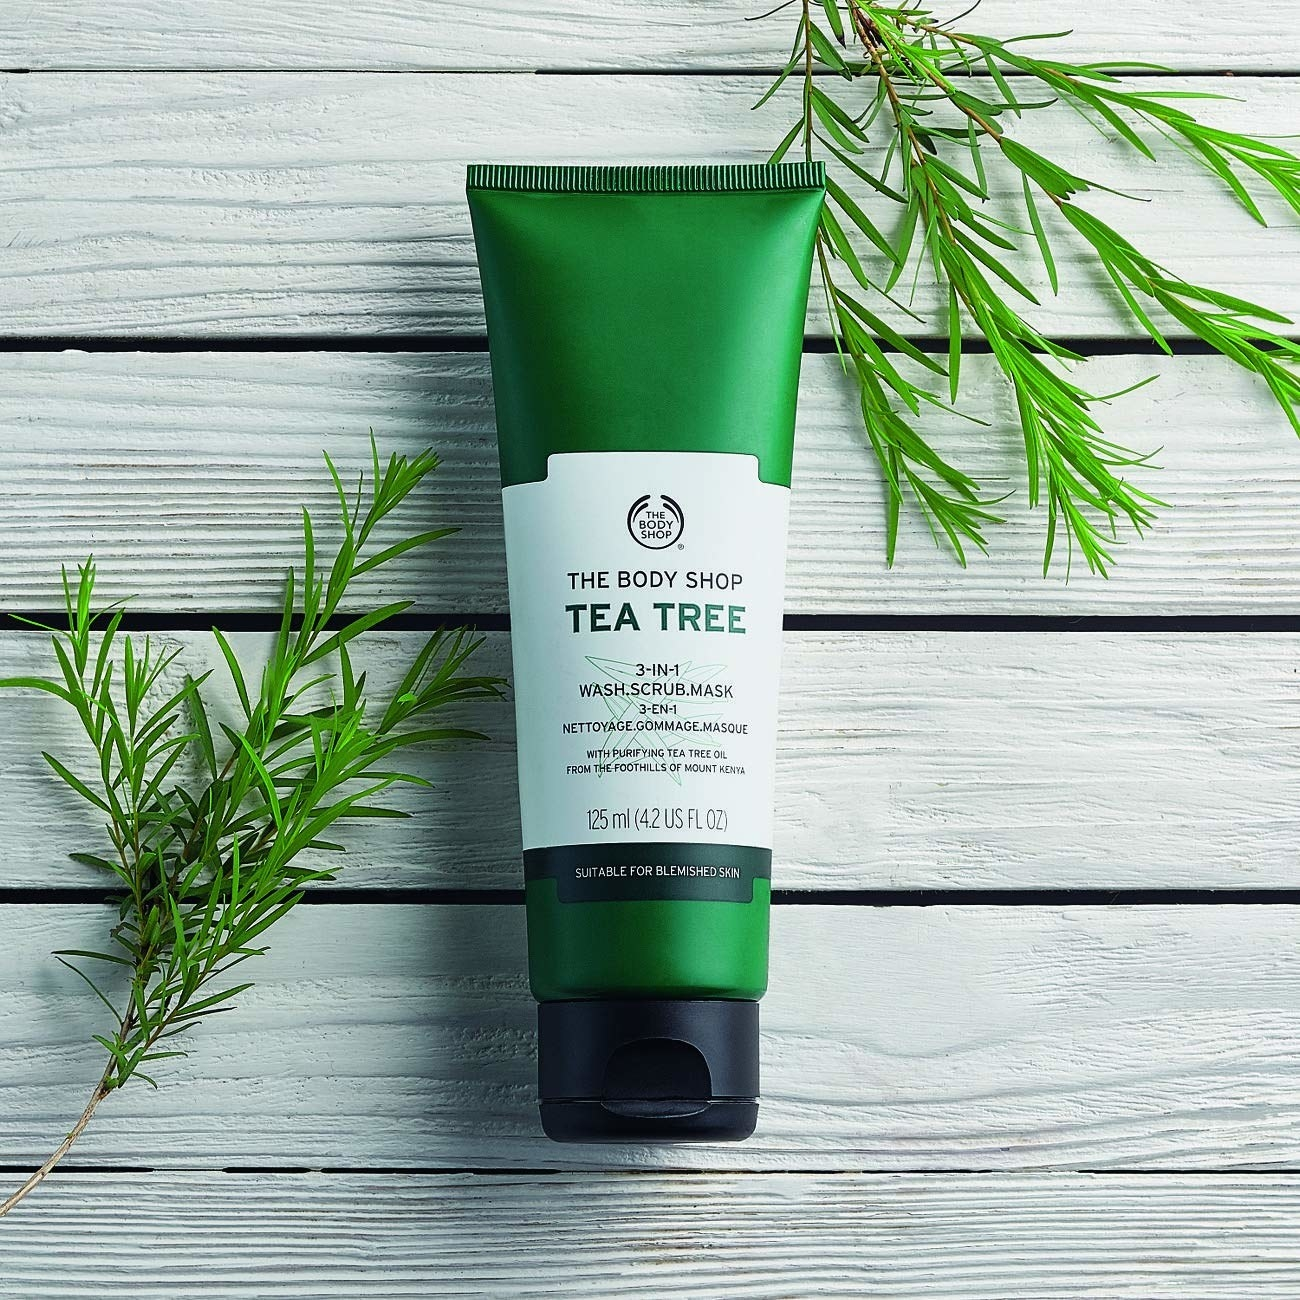 The Body Shop's 3-in-1 wash, scrub, and face mask in a green container